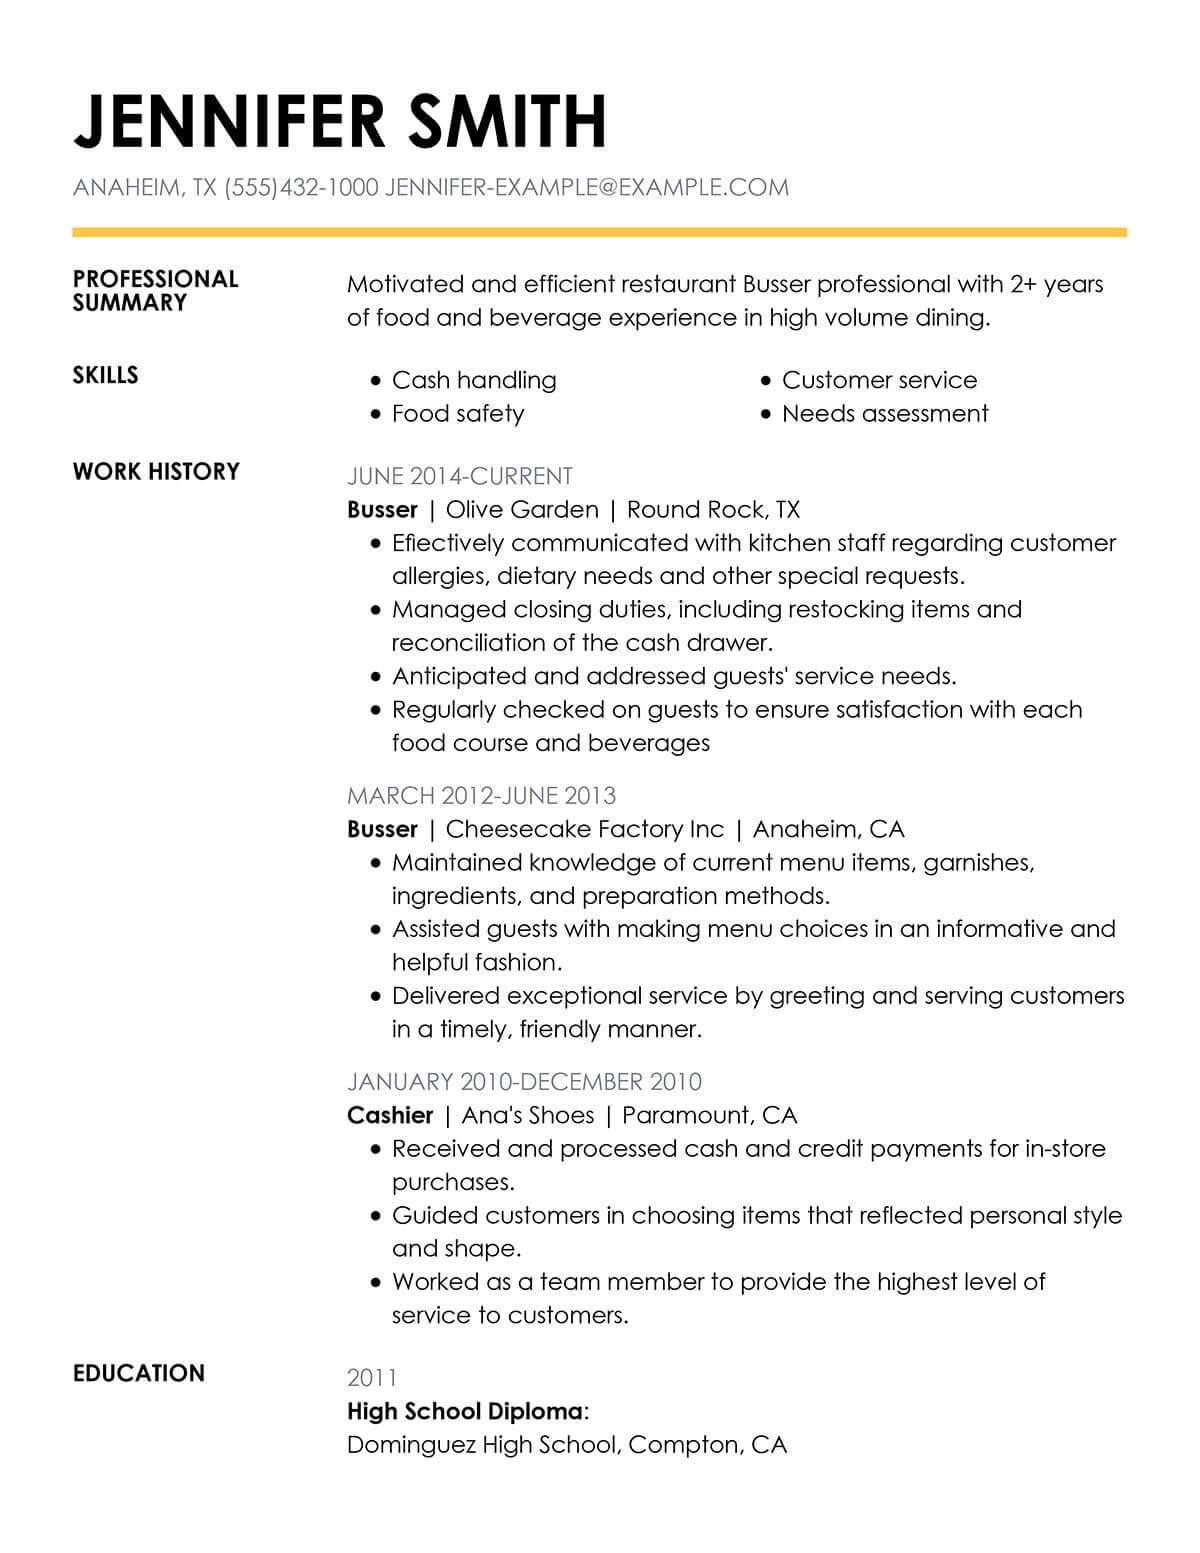 Busser Resume Sample Unforgettable Restaurant Server Resume Examples To Stand